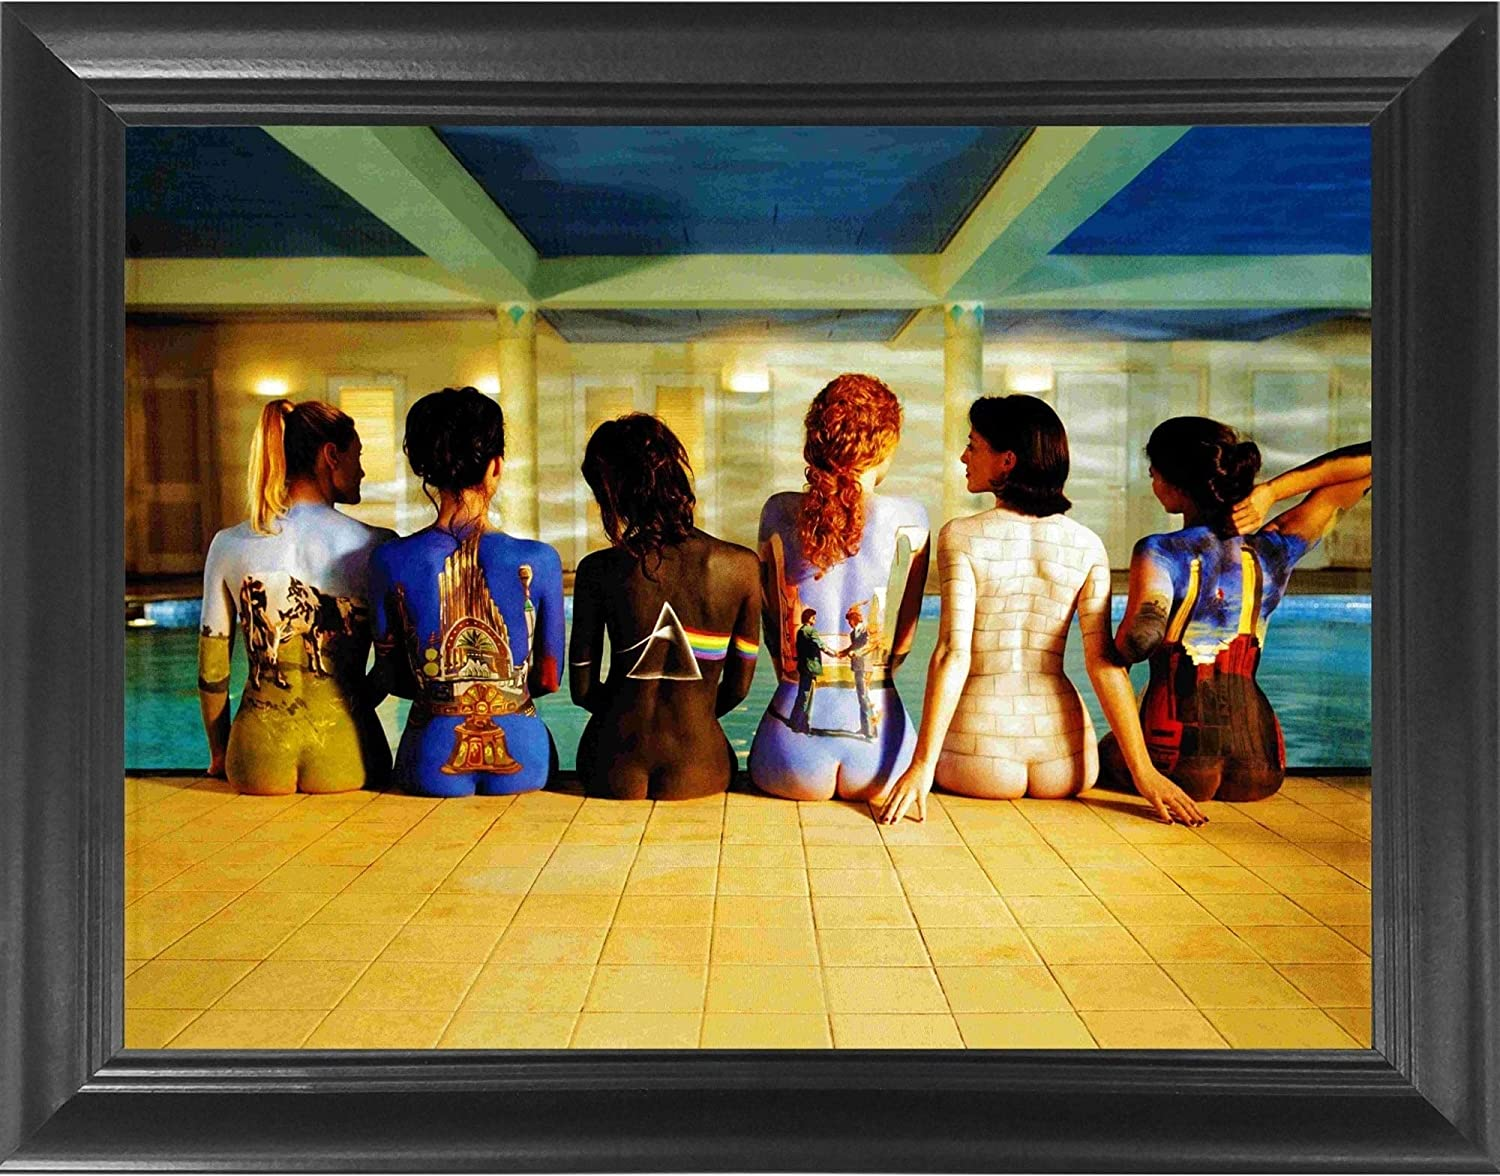 Pink Floyd Back Catalogue 21D Poster Wall Art Decor Framed Print   21.21x21.21    Lenticular Posters & Pictures   Memorabilia Gifts for Guys & Girls ...